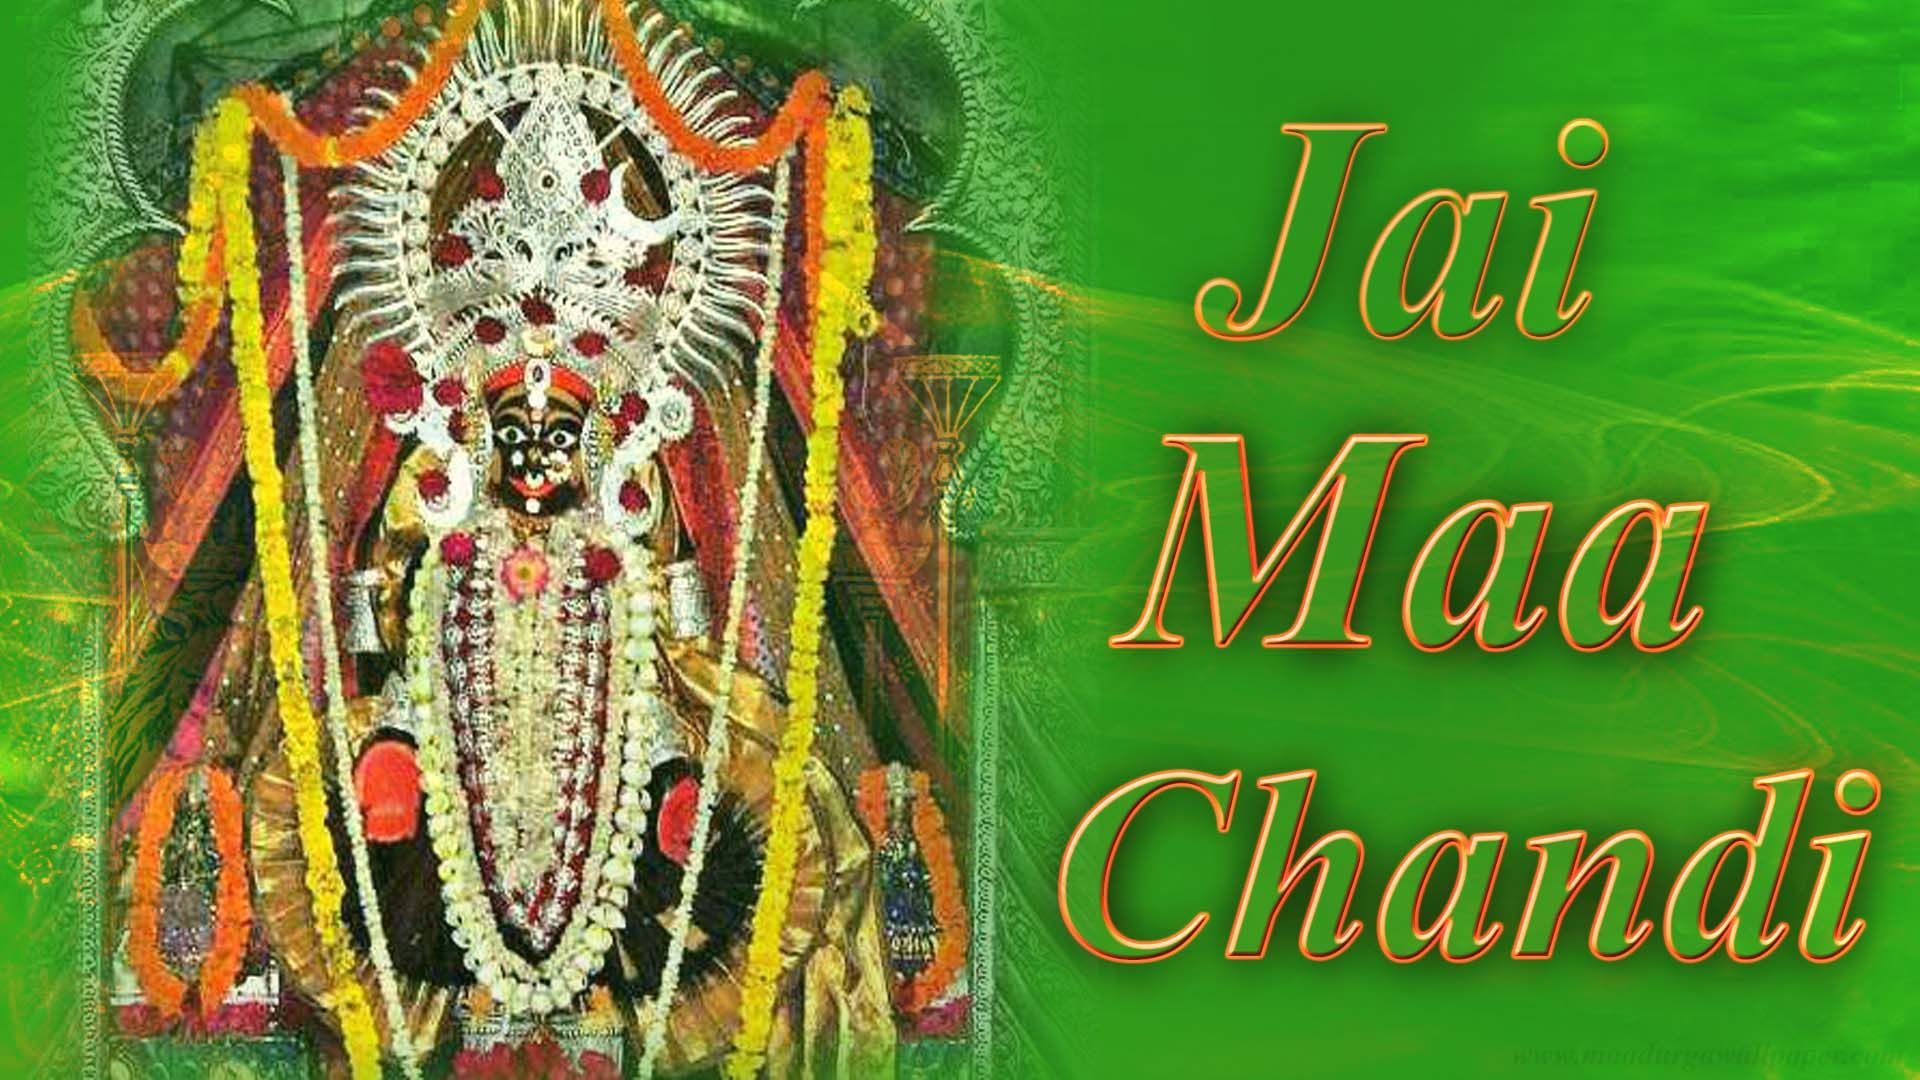 Wallpaper download free image search hd - Maa Chandi Images Hd Wallpaper Download